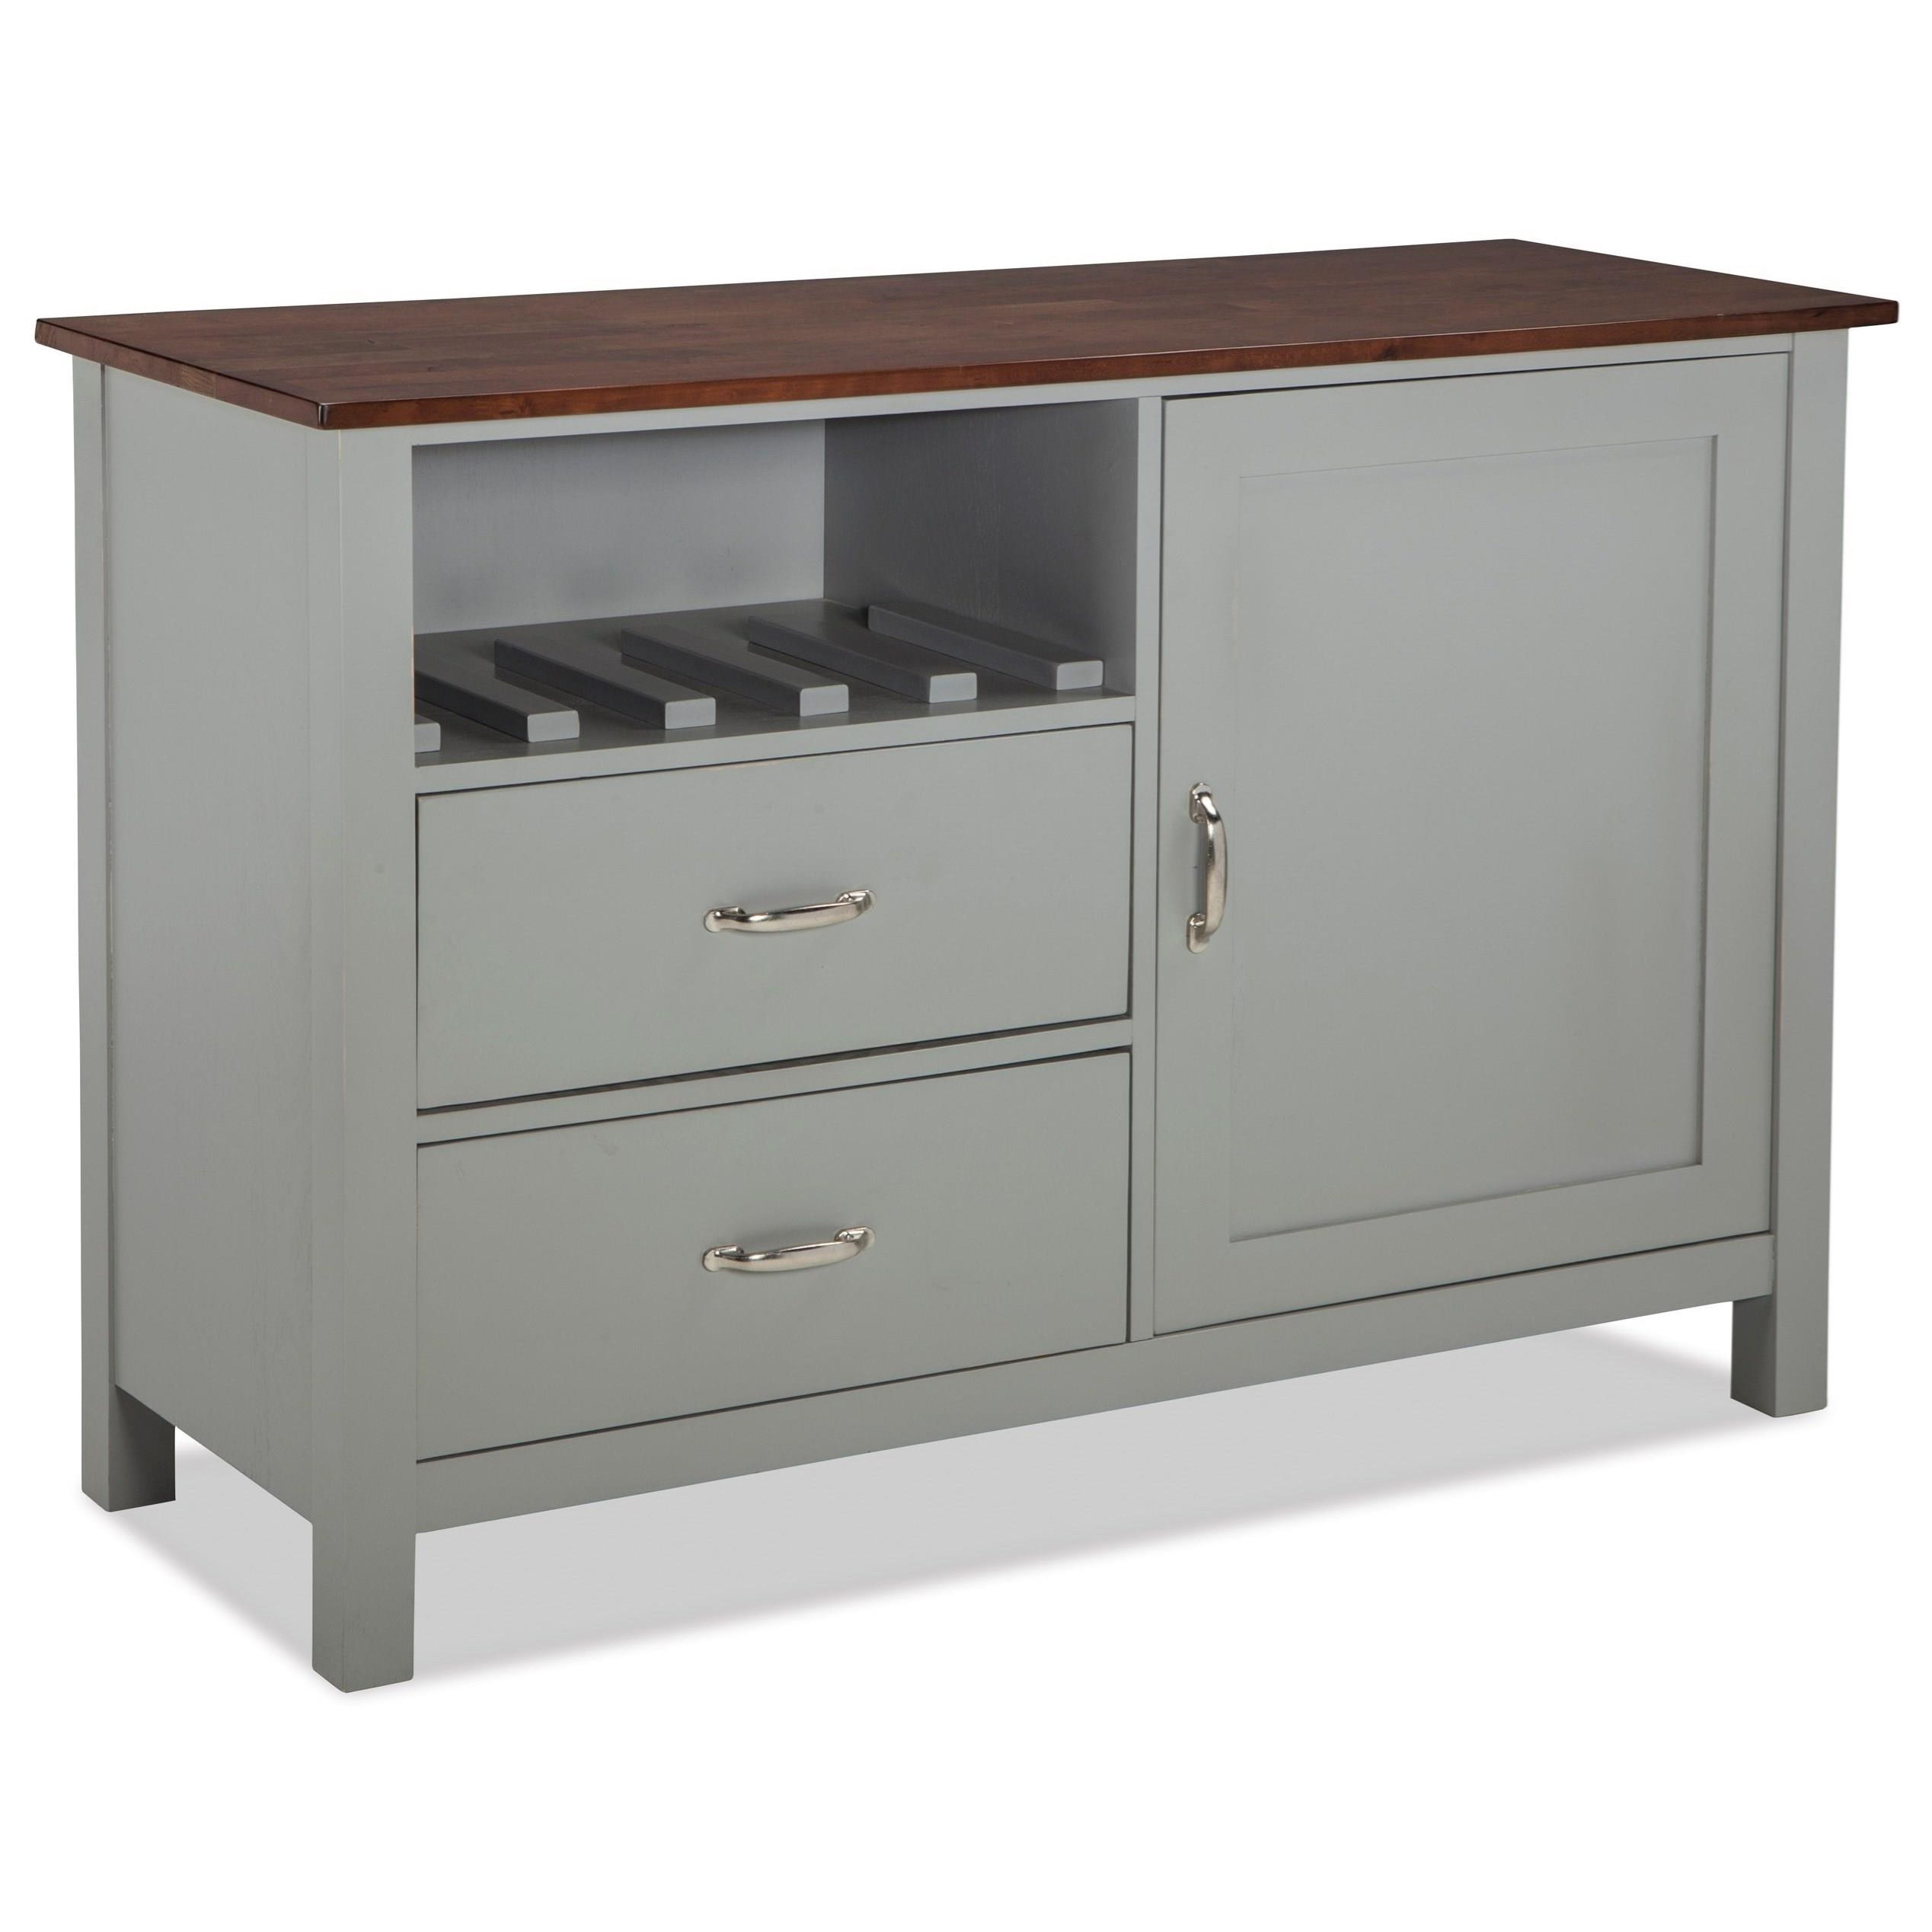 Intercon Small Space Dining Storage Server Buffet With